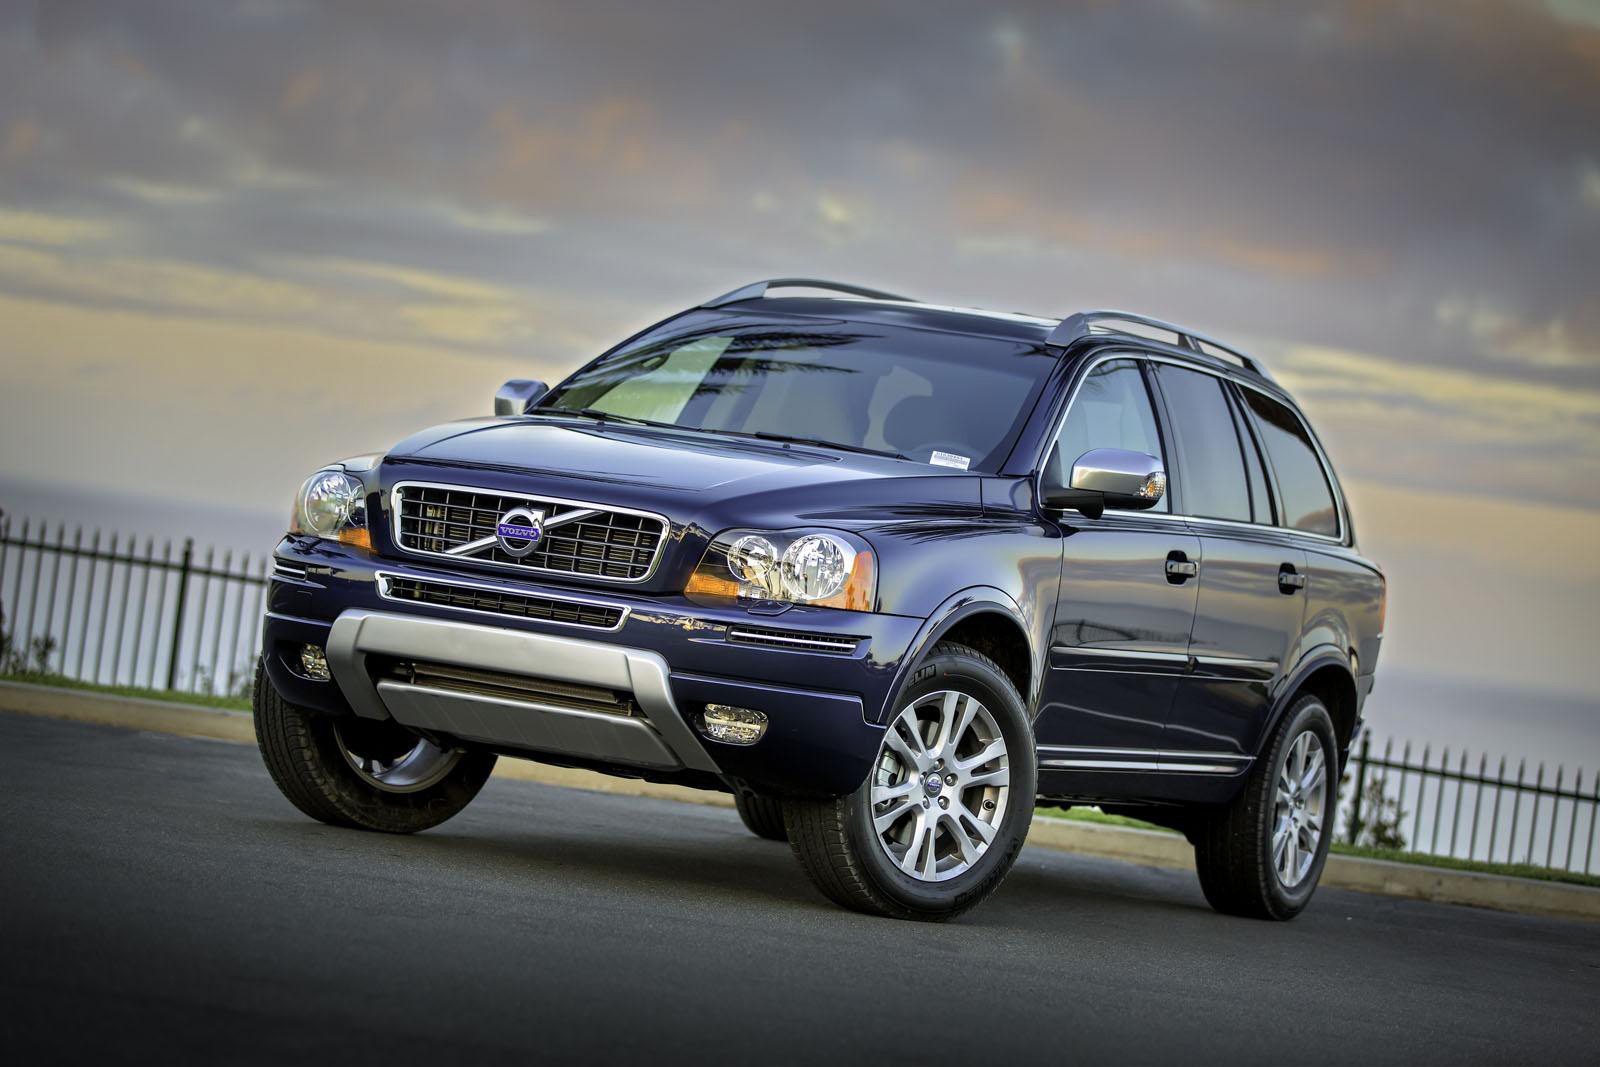 Best Car Models & All About Cars: 2013 Volvo XC90